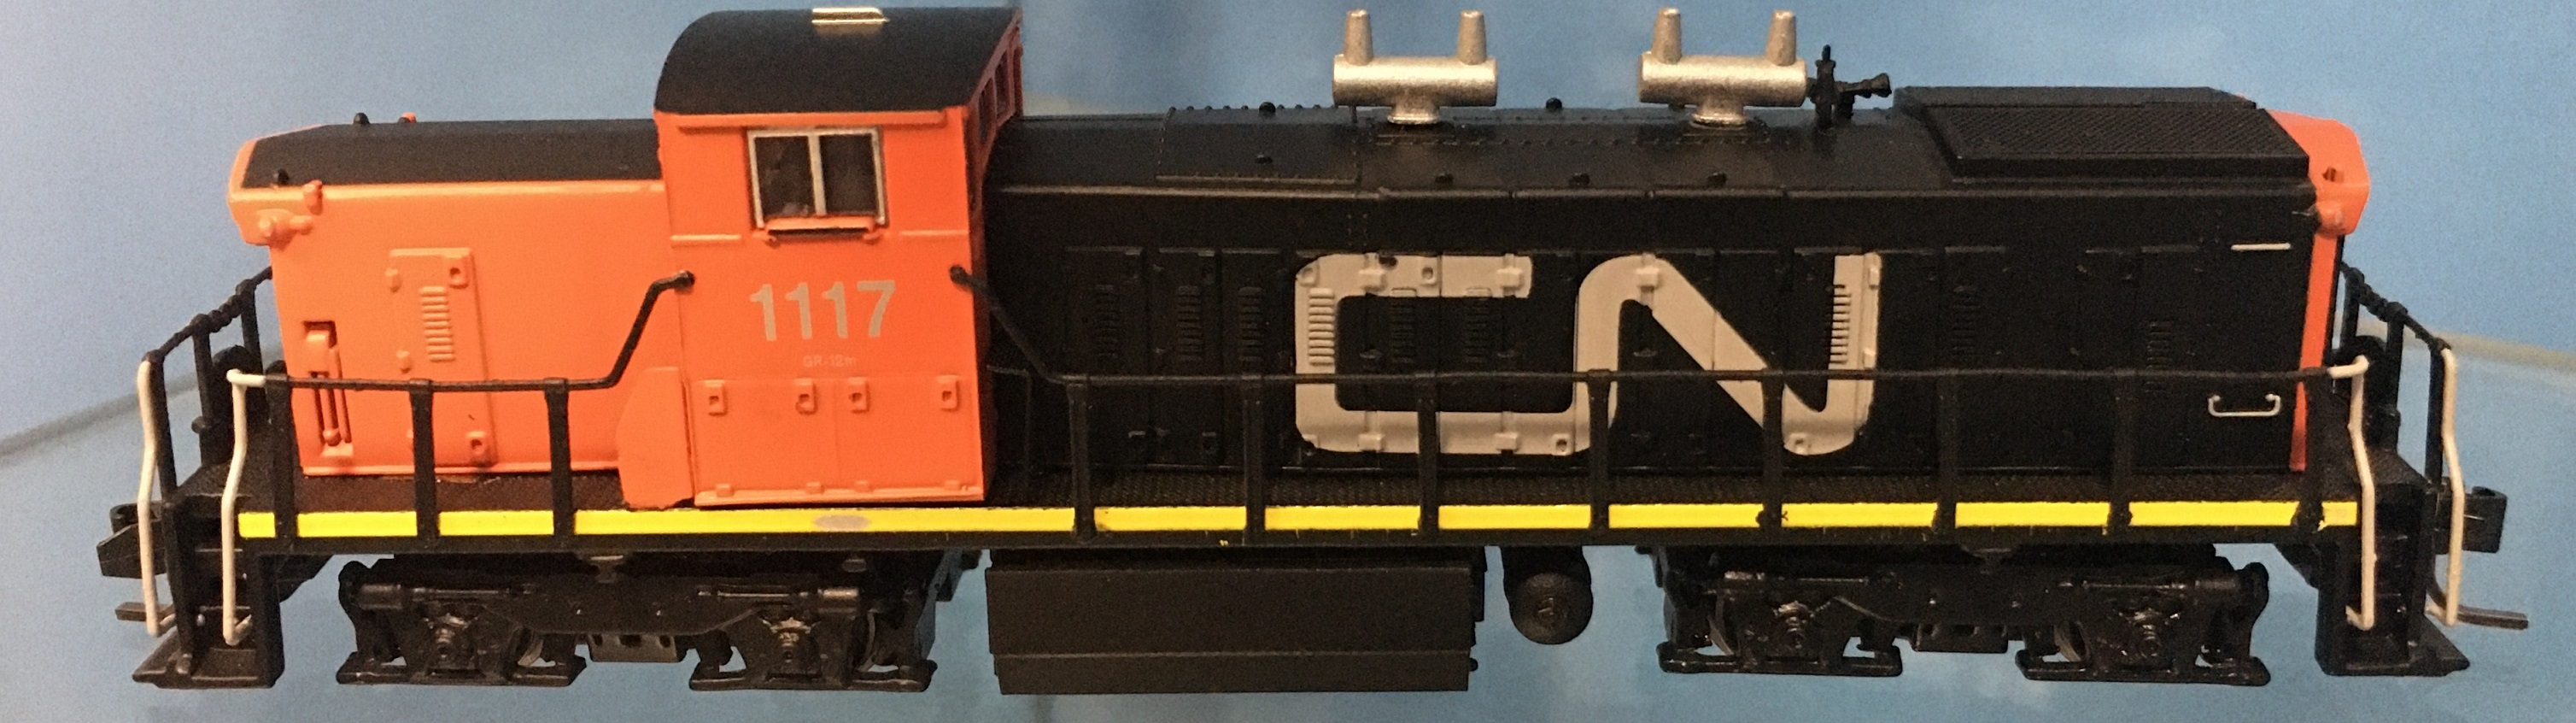 Rapido Trains 70545 N - GMD-1 1100 Series - DCC/Sound - Canadian National (Red Cab) #1101